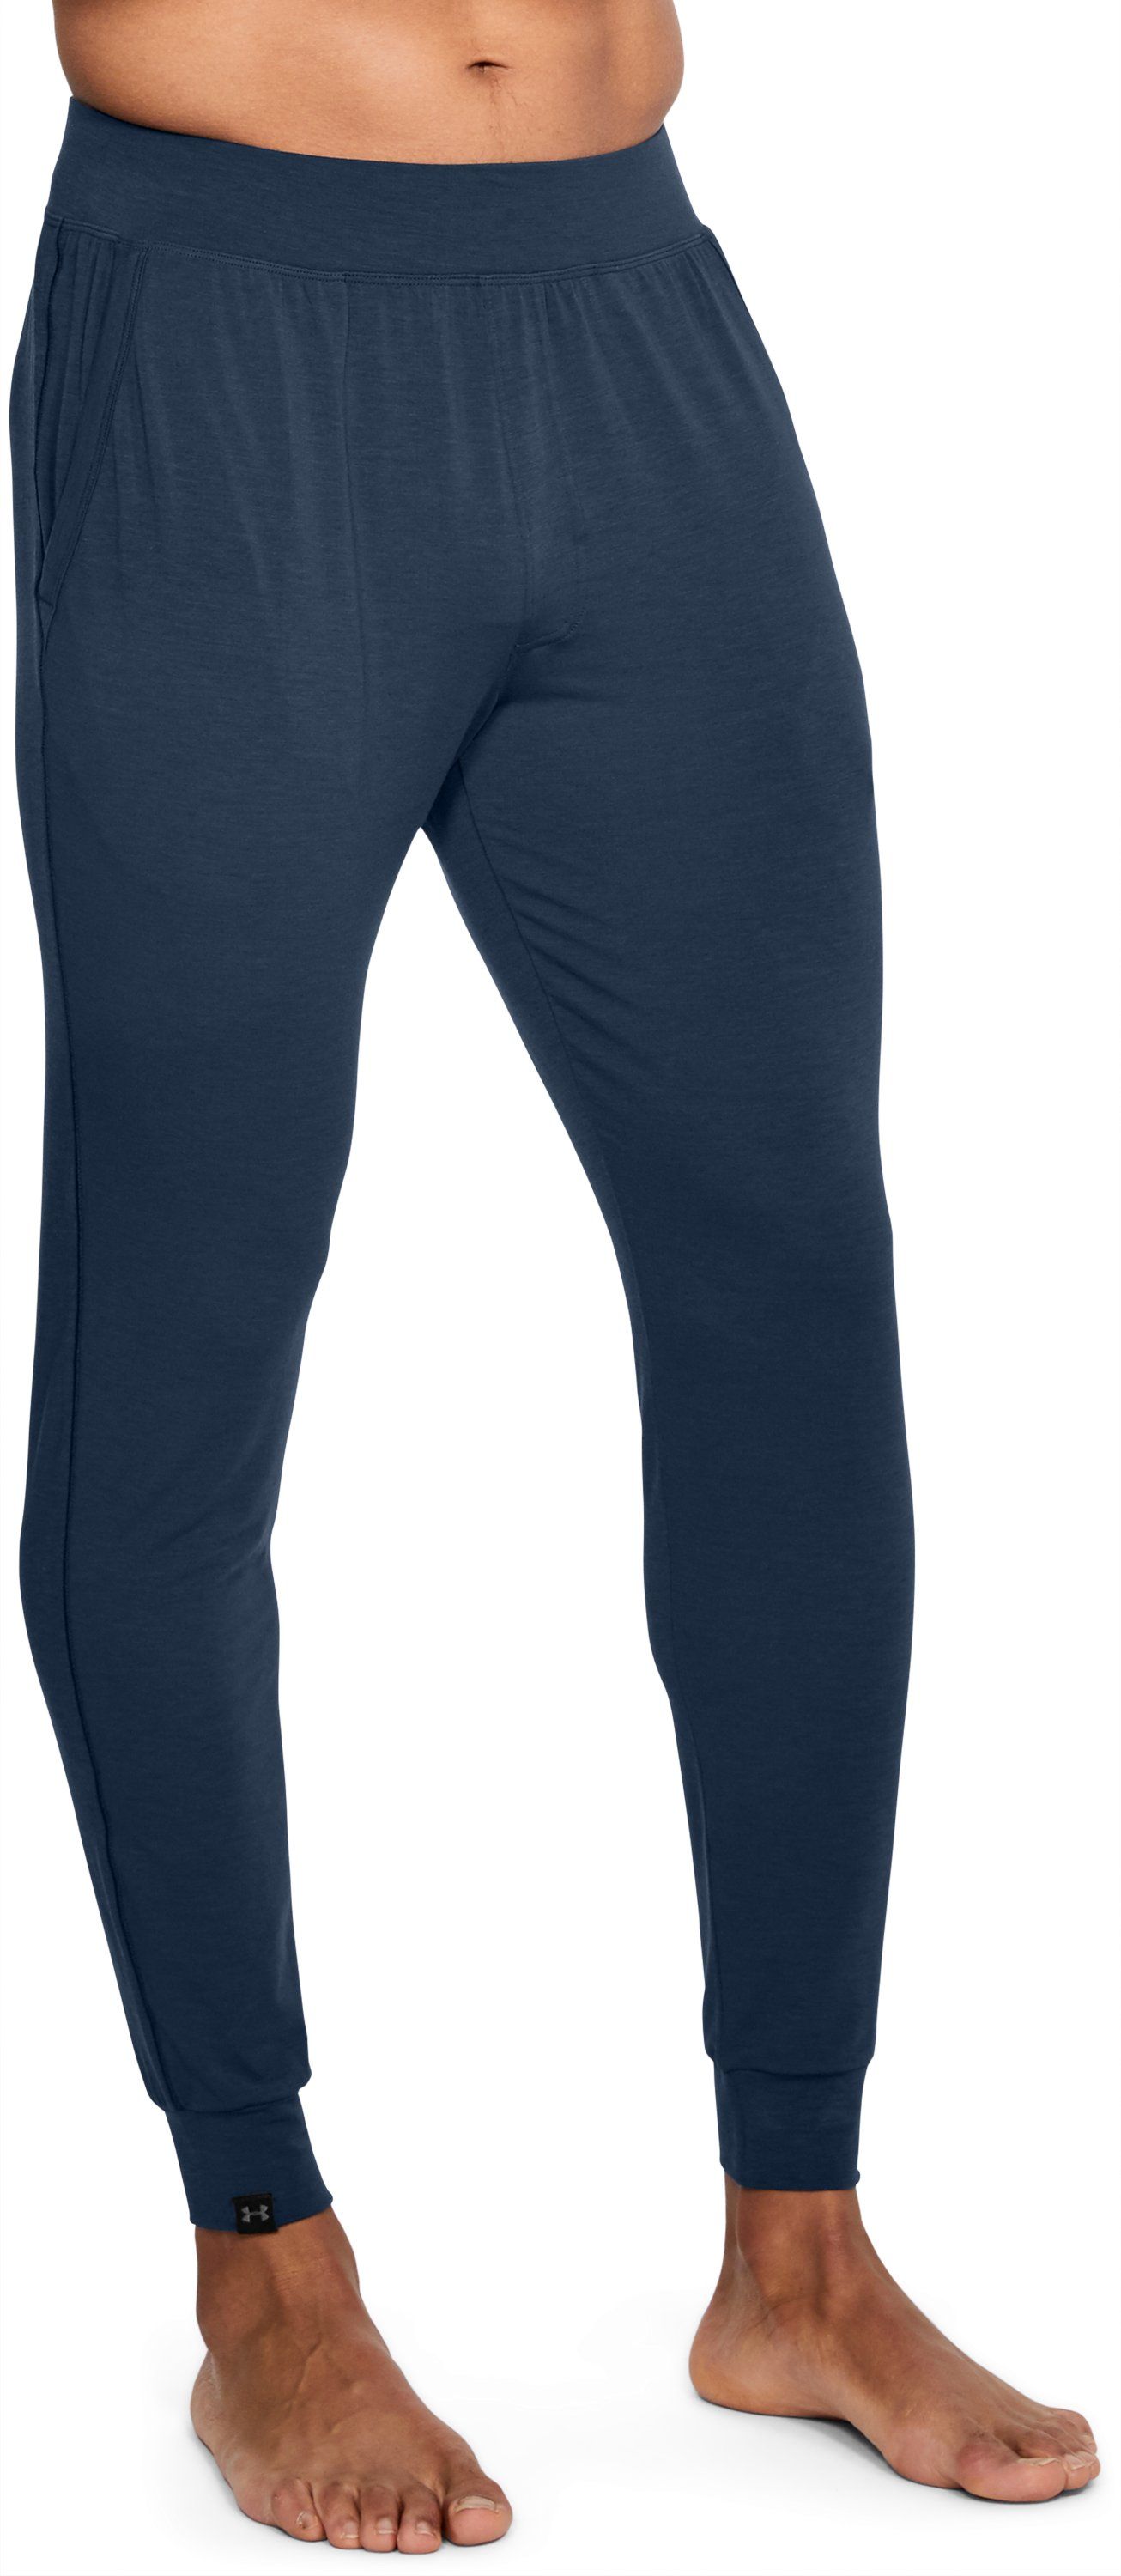 Men's Athlete Recovery Sleepwear Joggers 3 Colors $45.99 - $48.99